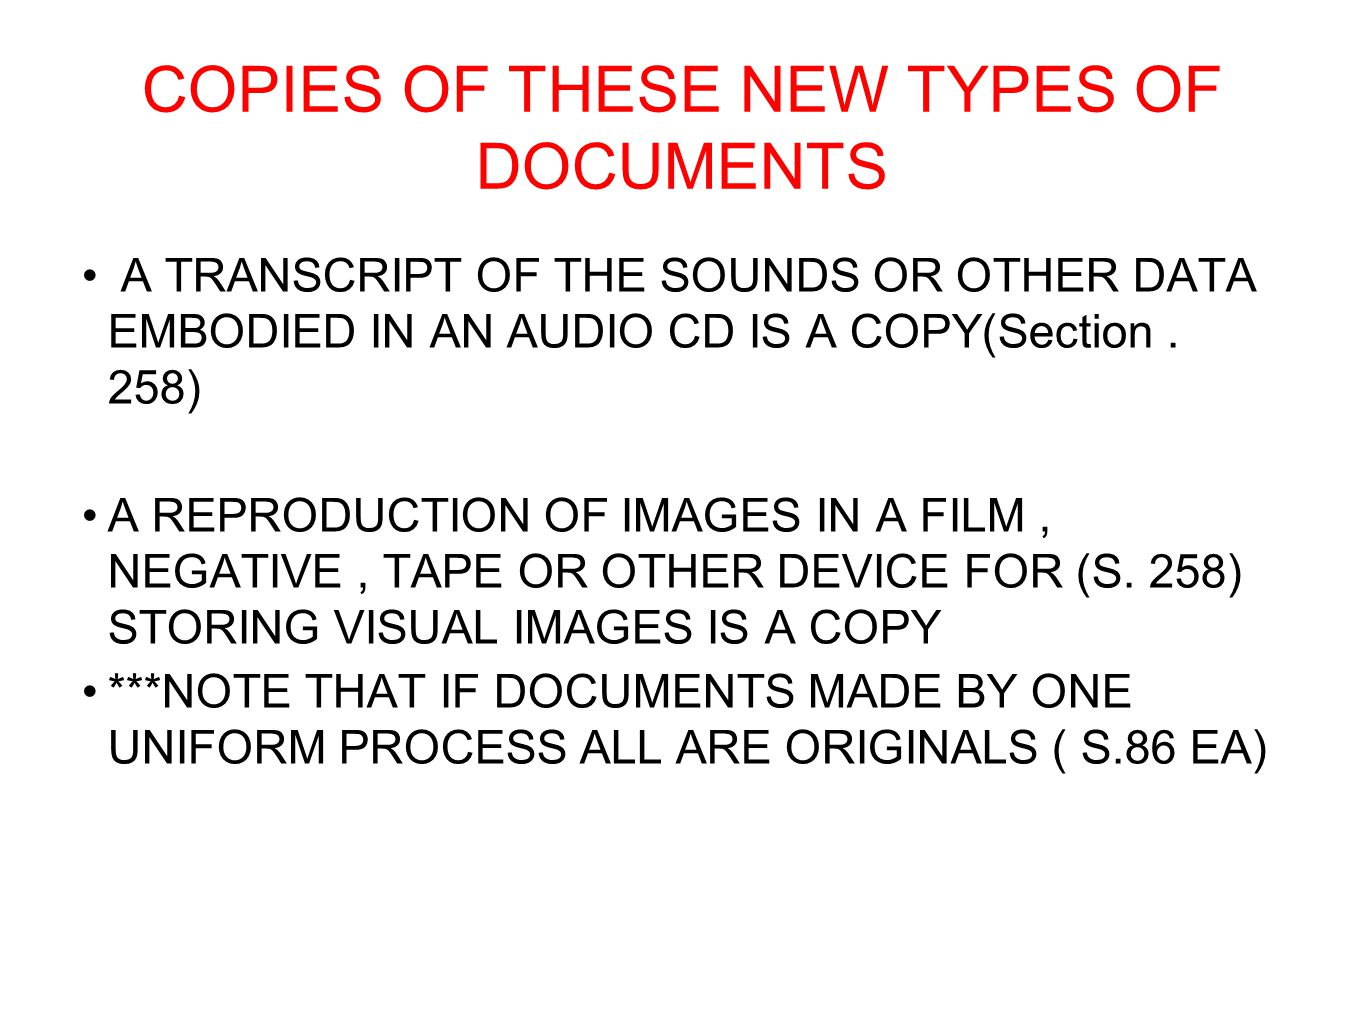 COPIES OF THESE NEW TYPES OF DOCUMENTS